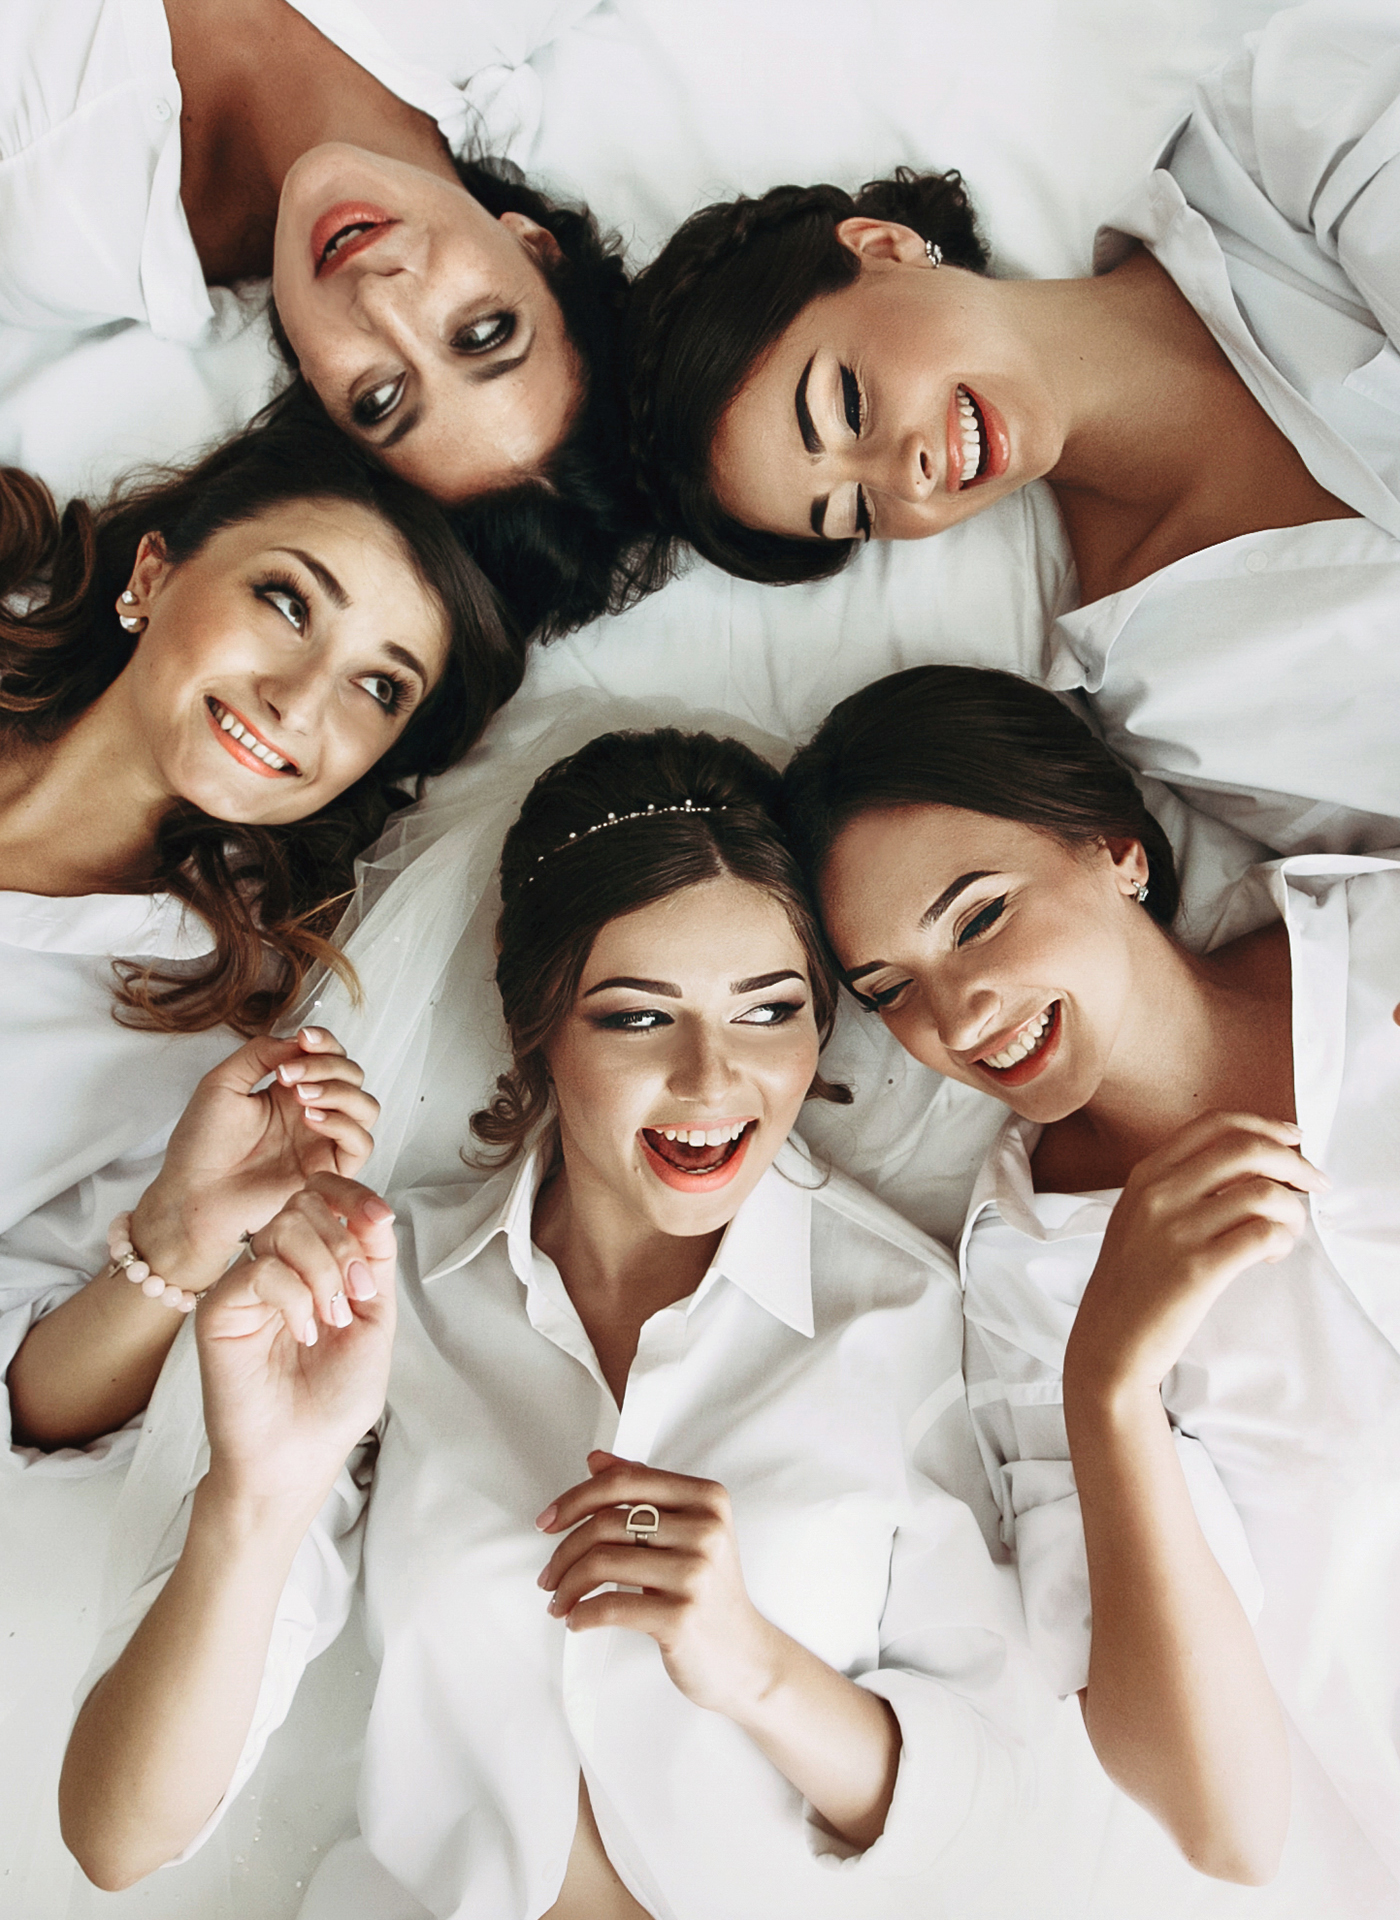 Sexy bride & bridesmaids lying in bed before wedding